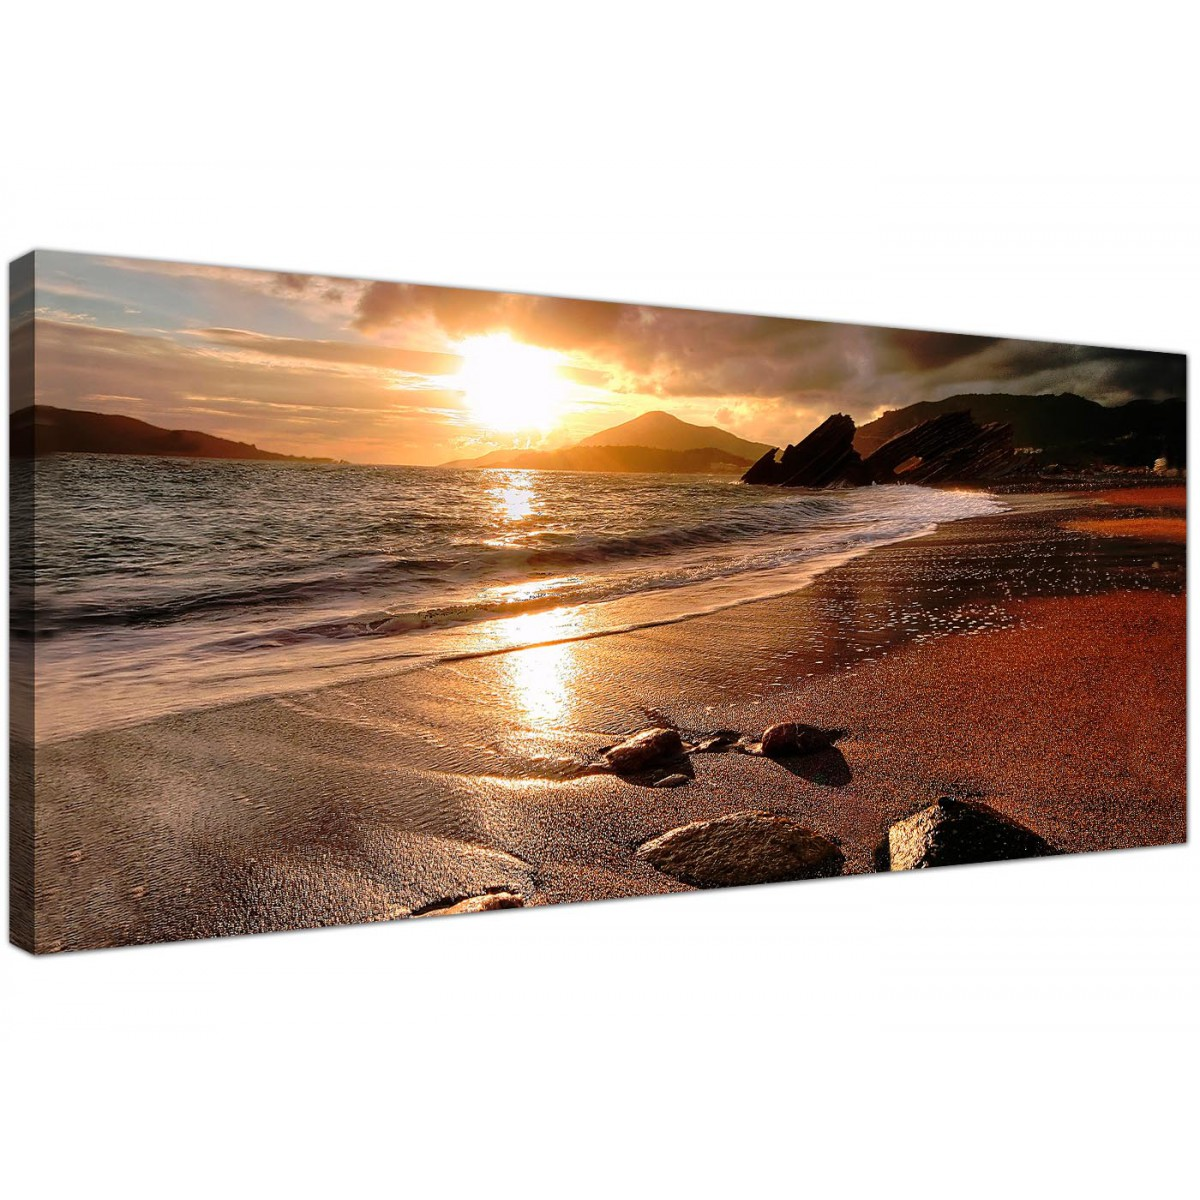 100 cm wide sofa bed purple velvet upholstered canvas prints of a beach sunset for your living room